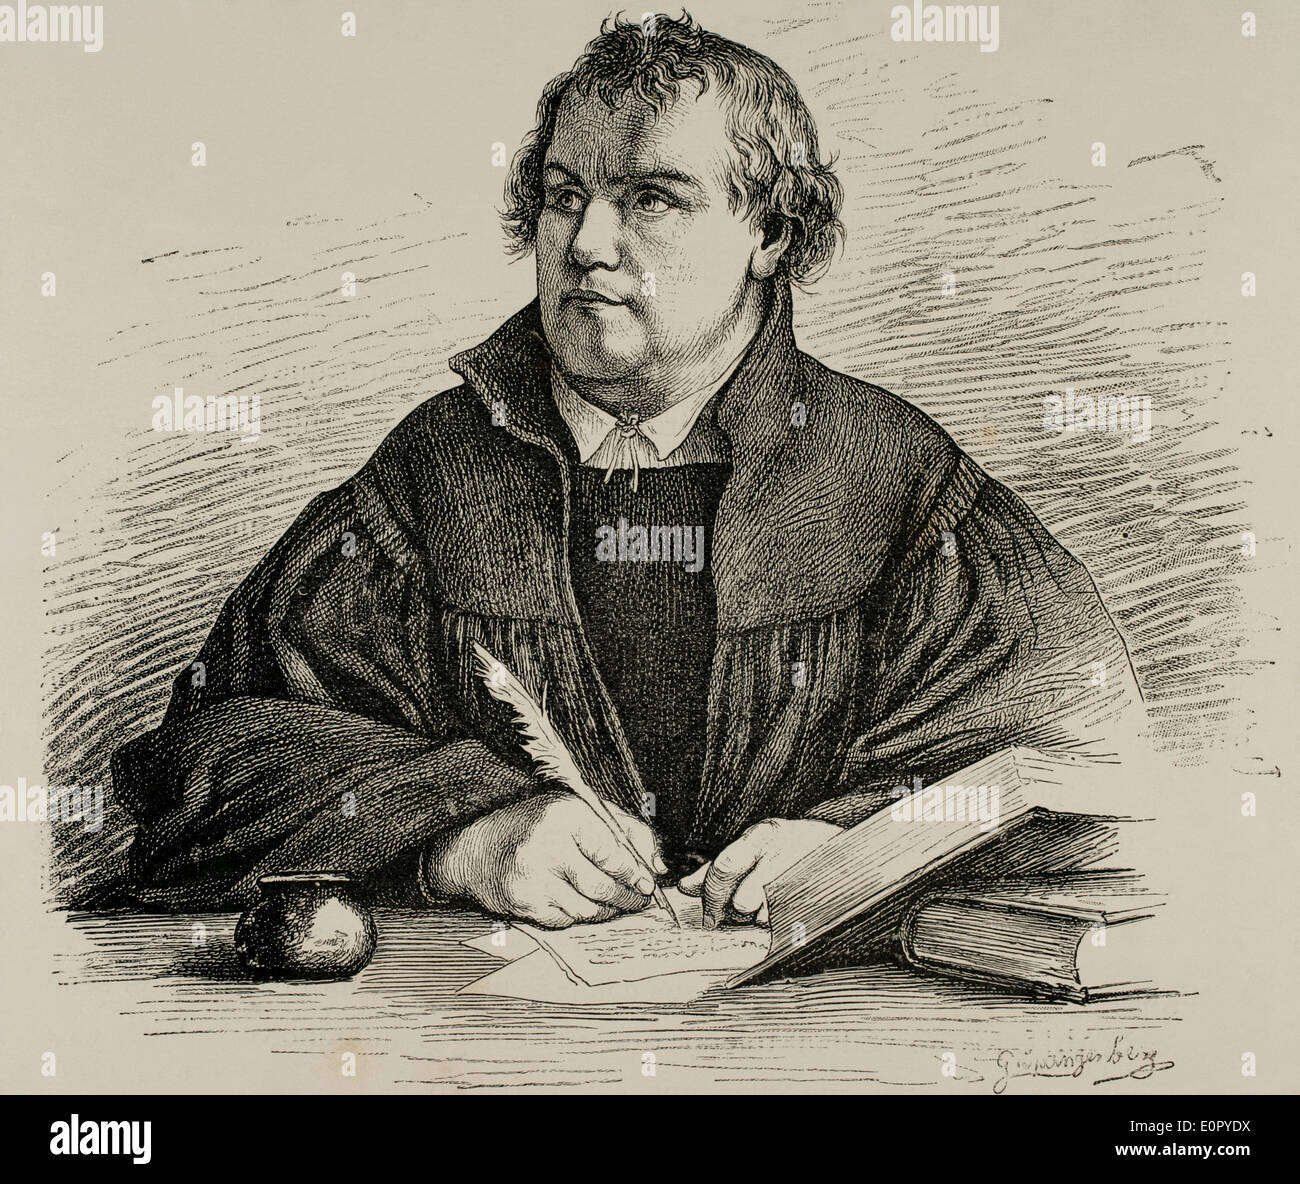 Martin Luther (1483-1546). German reformer. Engraving by G. Spangerberg in Germania, 1882. - Stock Image